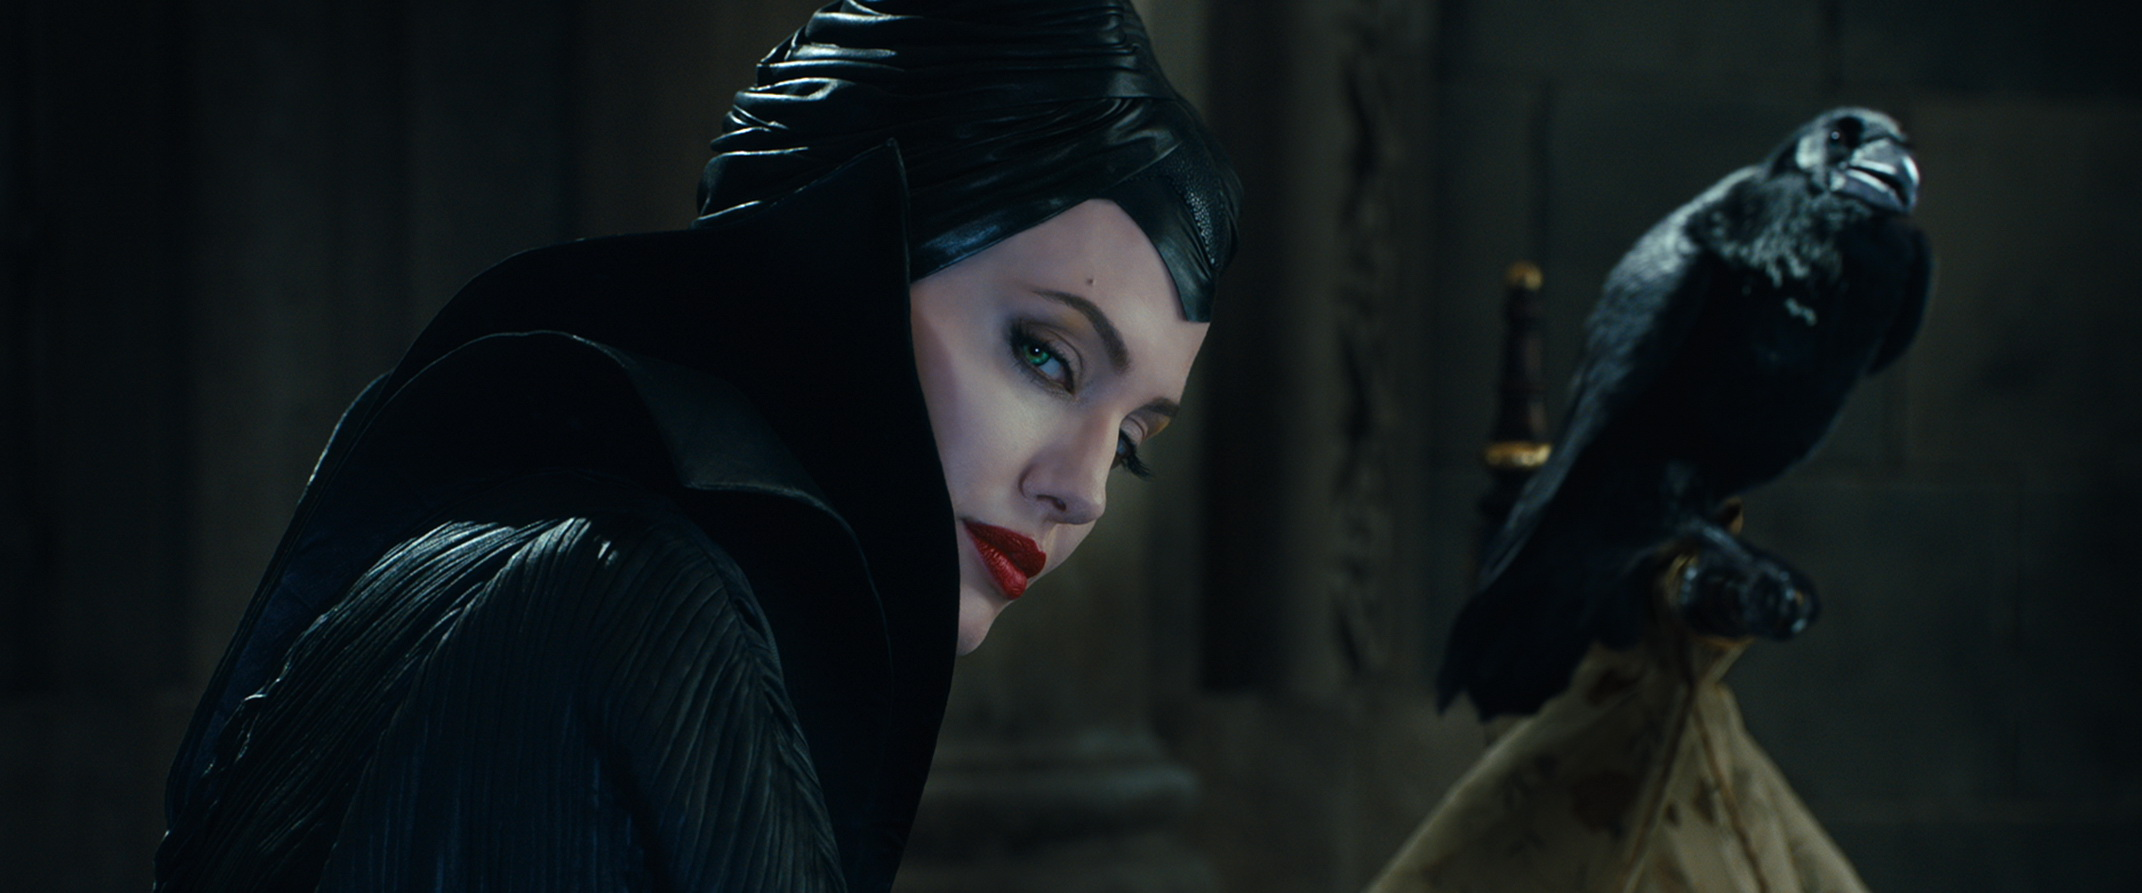 Maleficent - gaze2